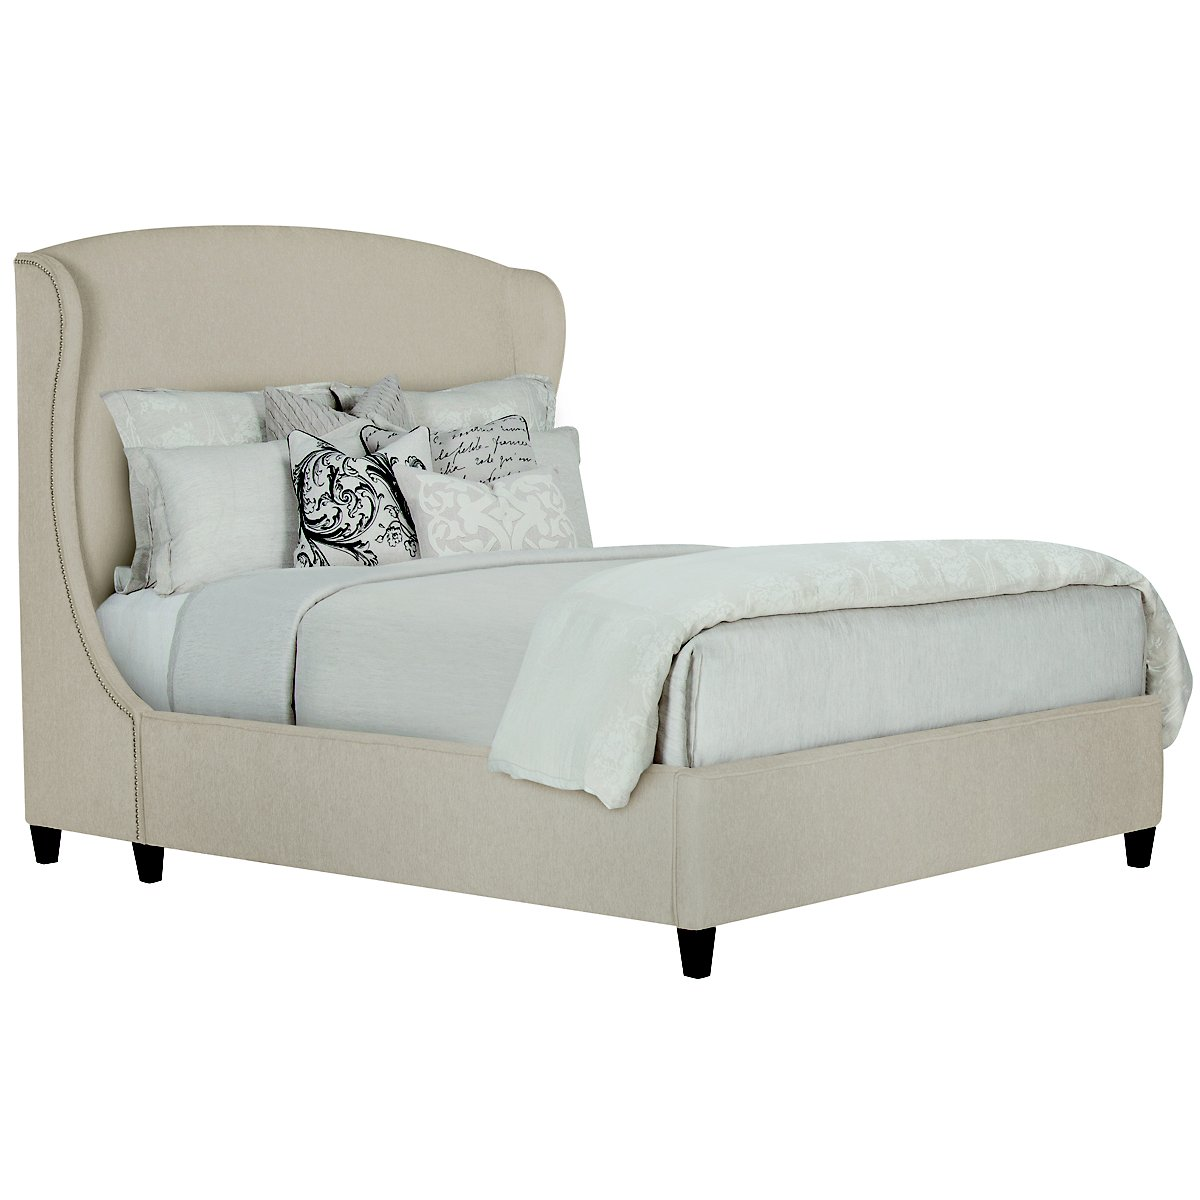 Canyon Light Taupe Upholstered Platform Bed